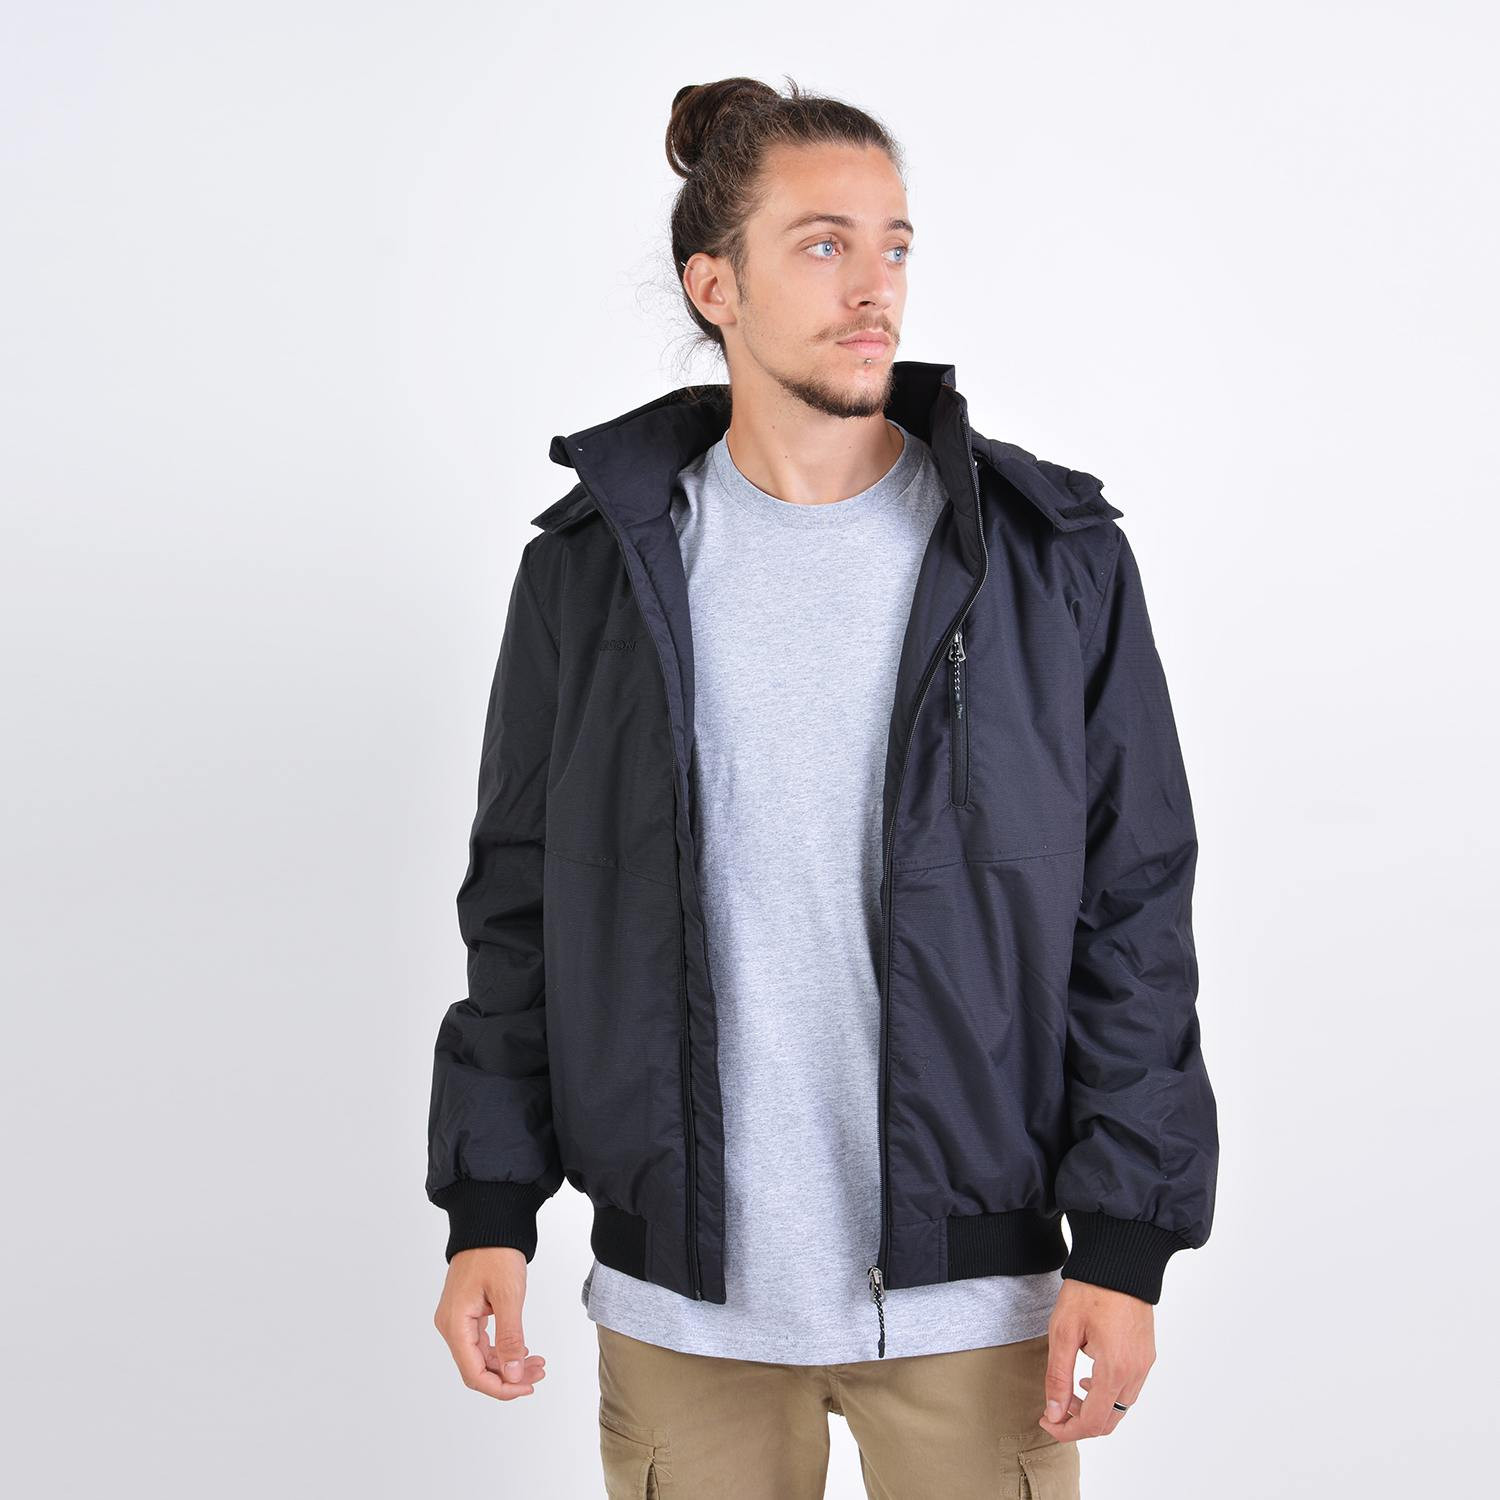 Emerson Men's Ribbed Jacket With Det/ble Hood (9000036089_40988)